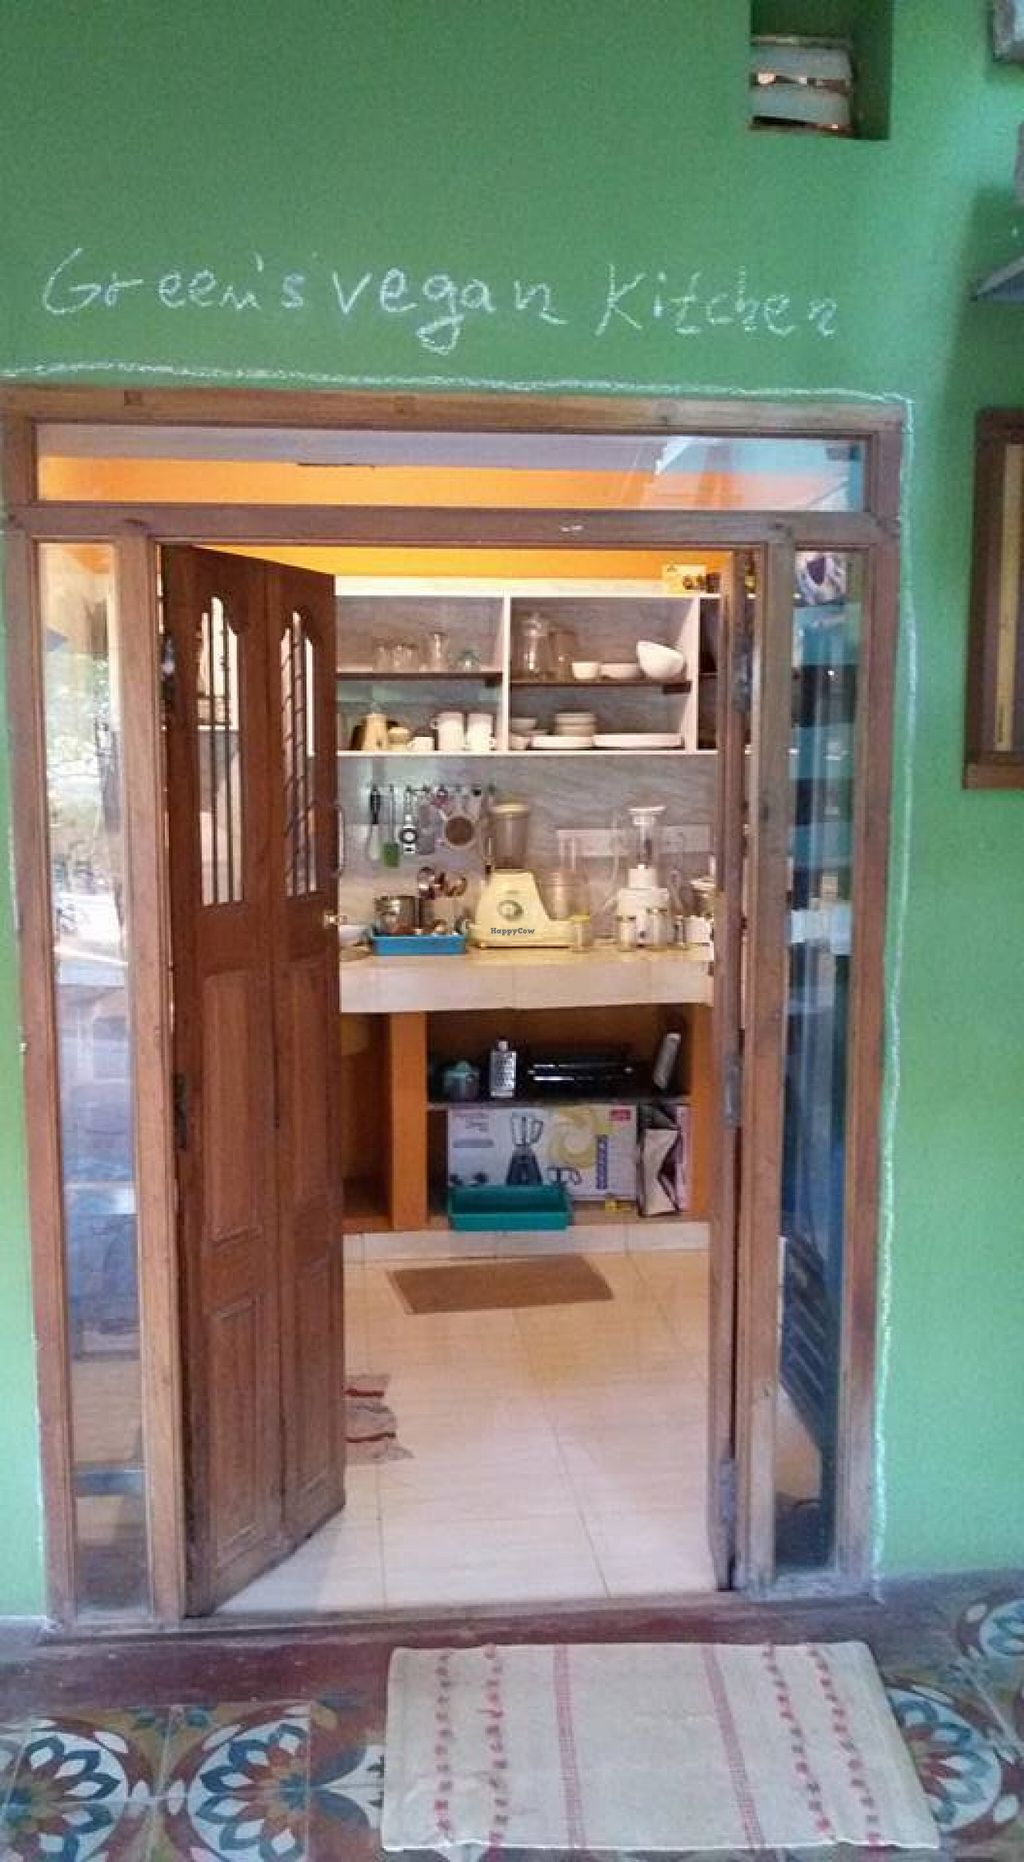 """Photo of Green's Guesthouse and Kitchen  by <a href=""""/members/profile/community"""">community</a> <br/>Green's Guesthouse and Kitchen <br/> December 20, 2015  - <a href='/contact/abuse/image/66448/129341'>Report</a>"""